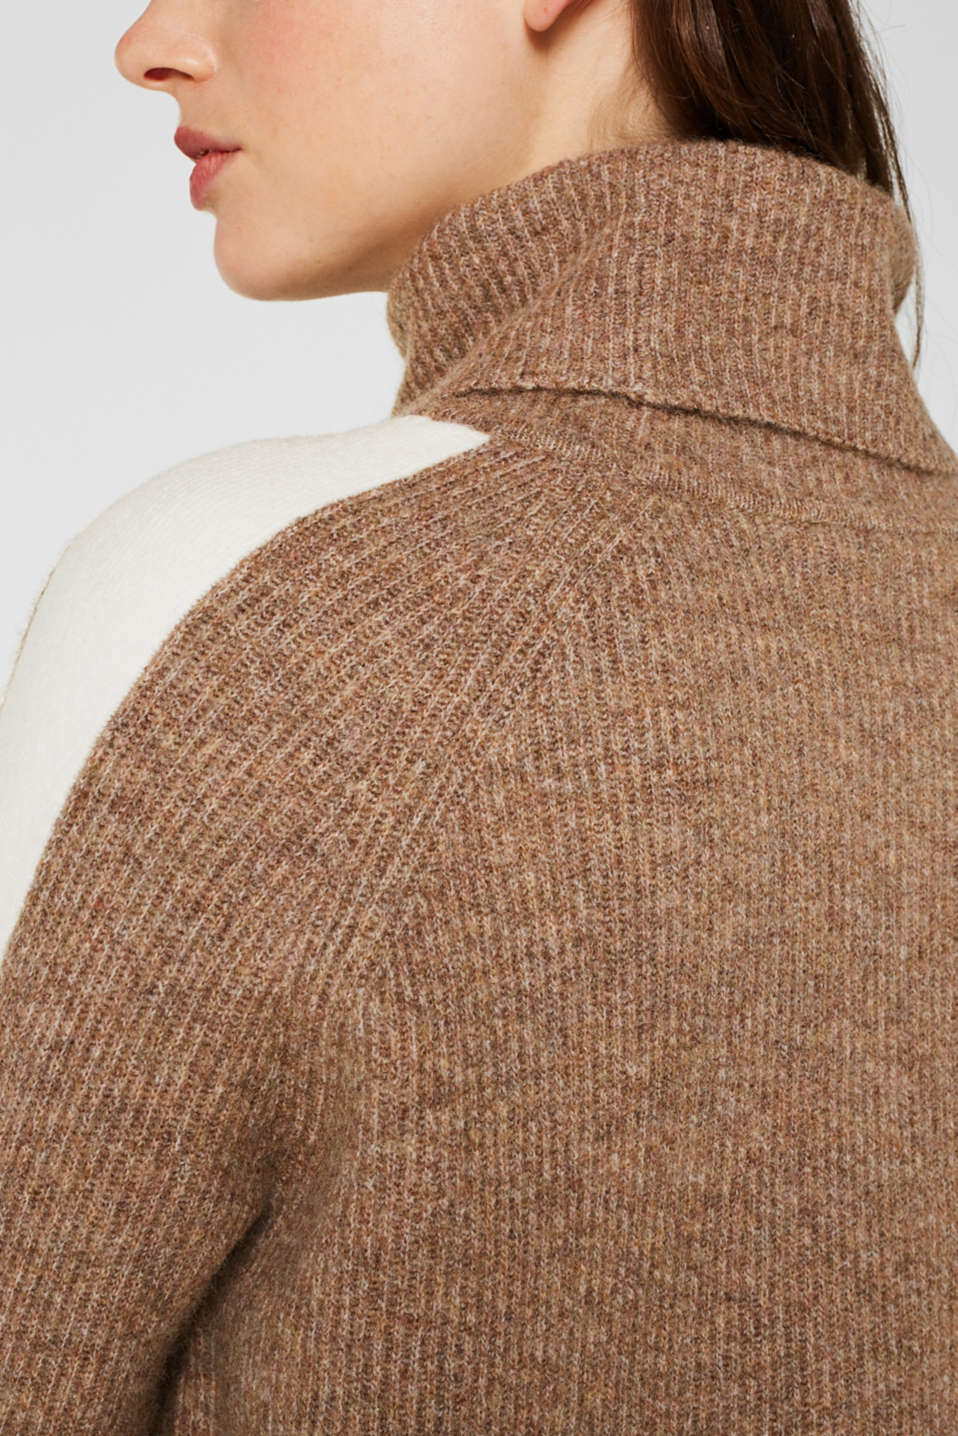 Polo neck jumper with racing stripes and wool, CAMEL 5, detail image number 2